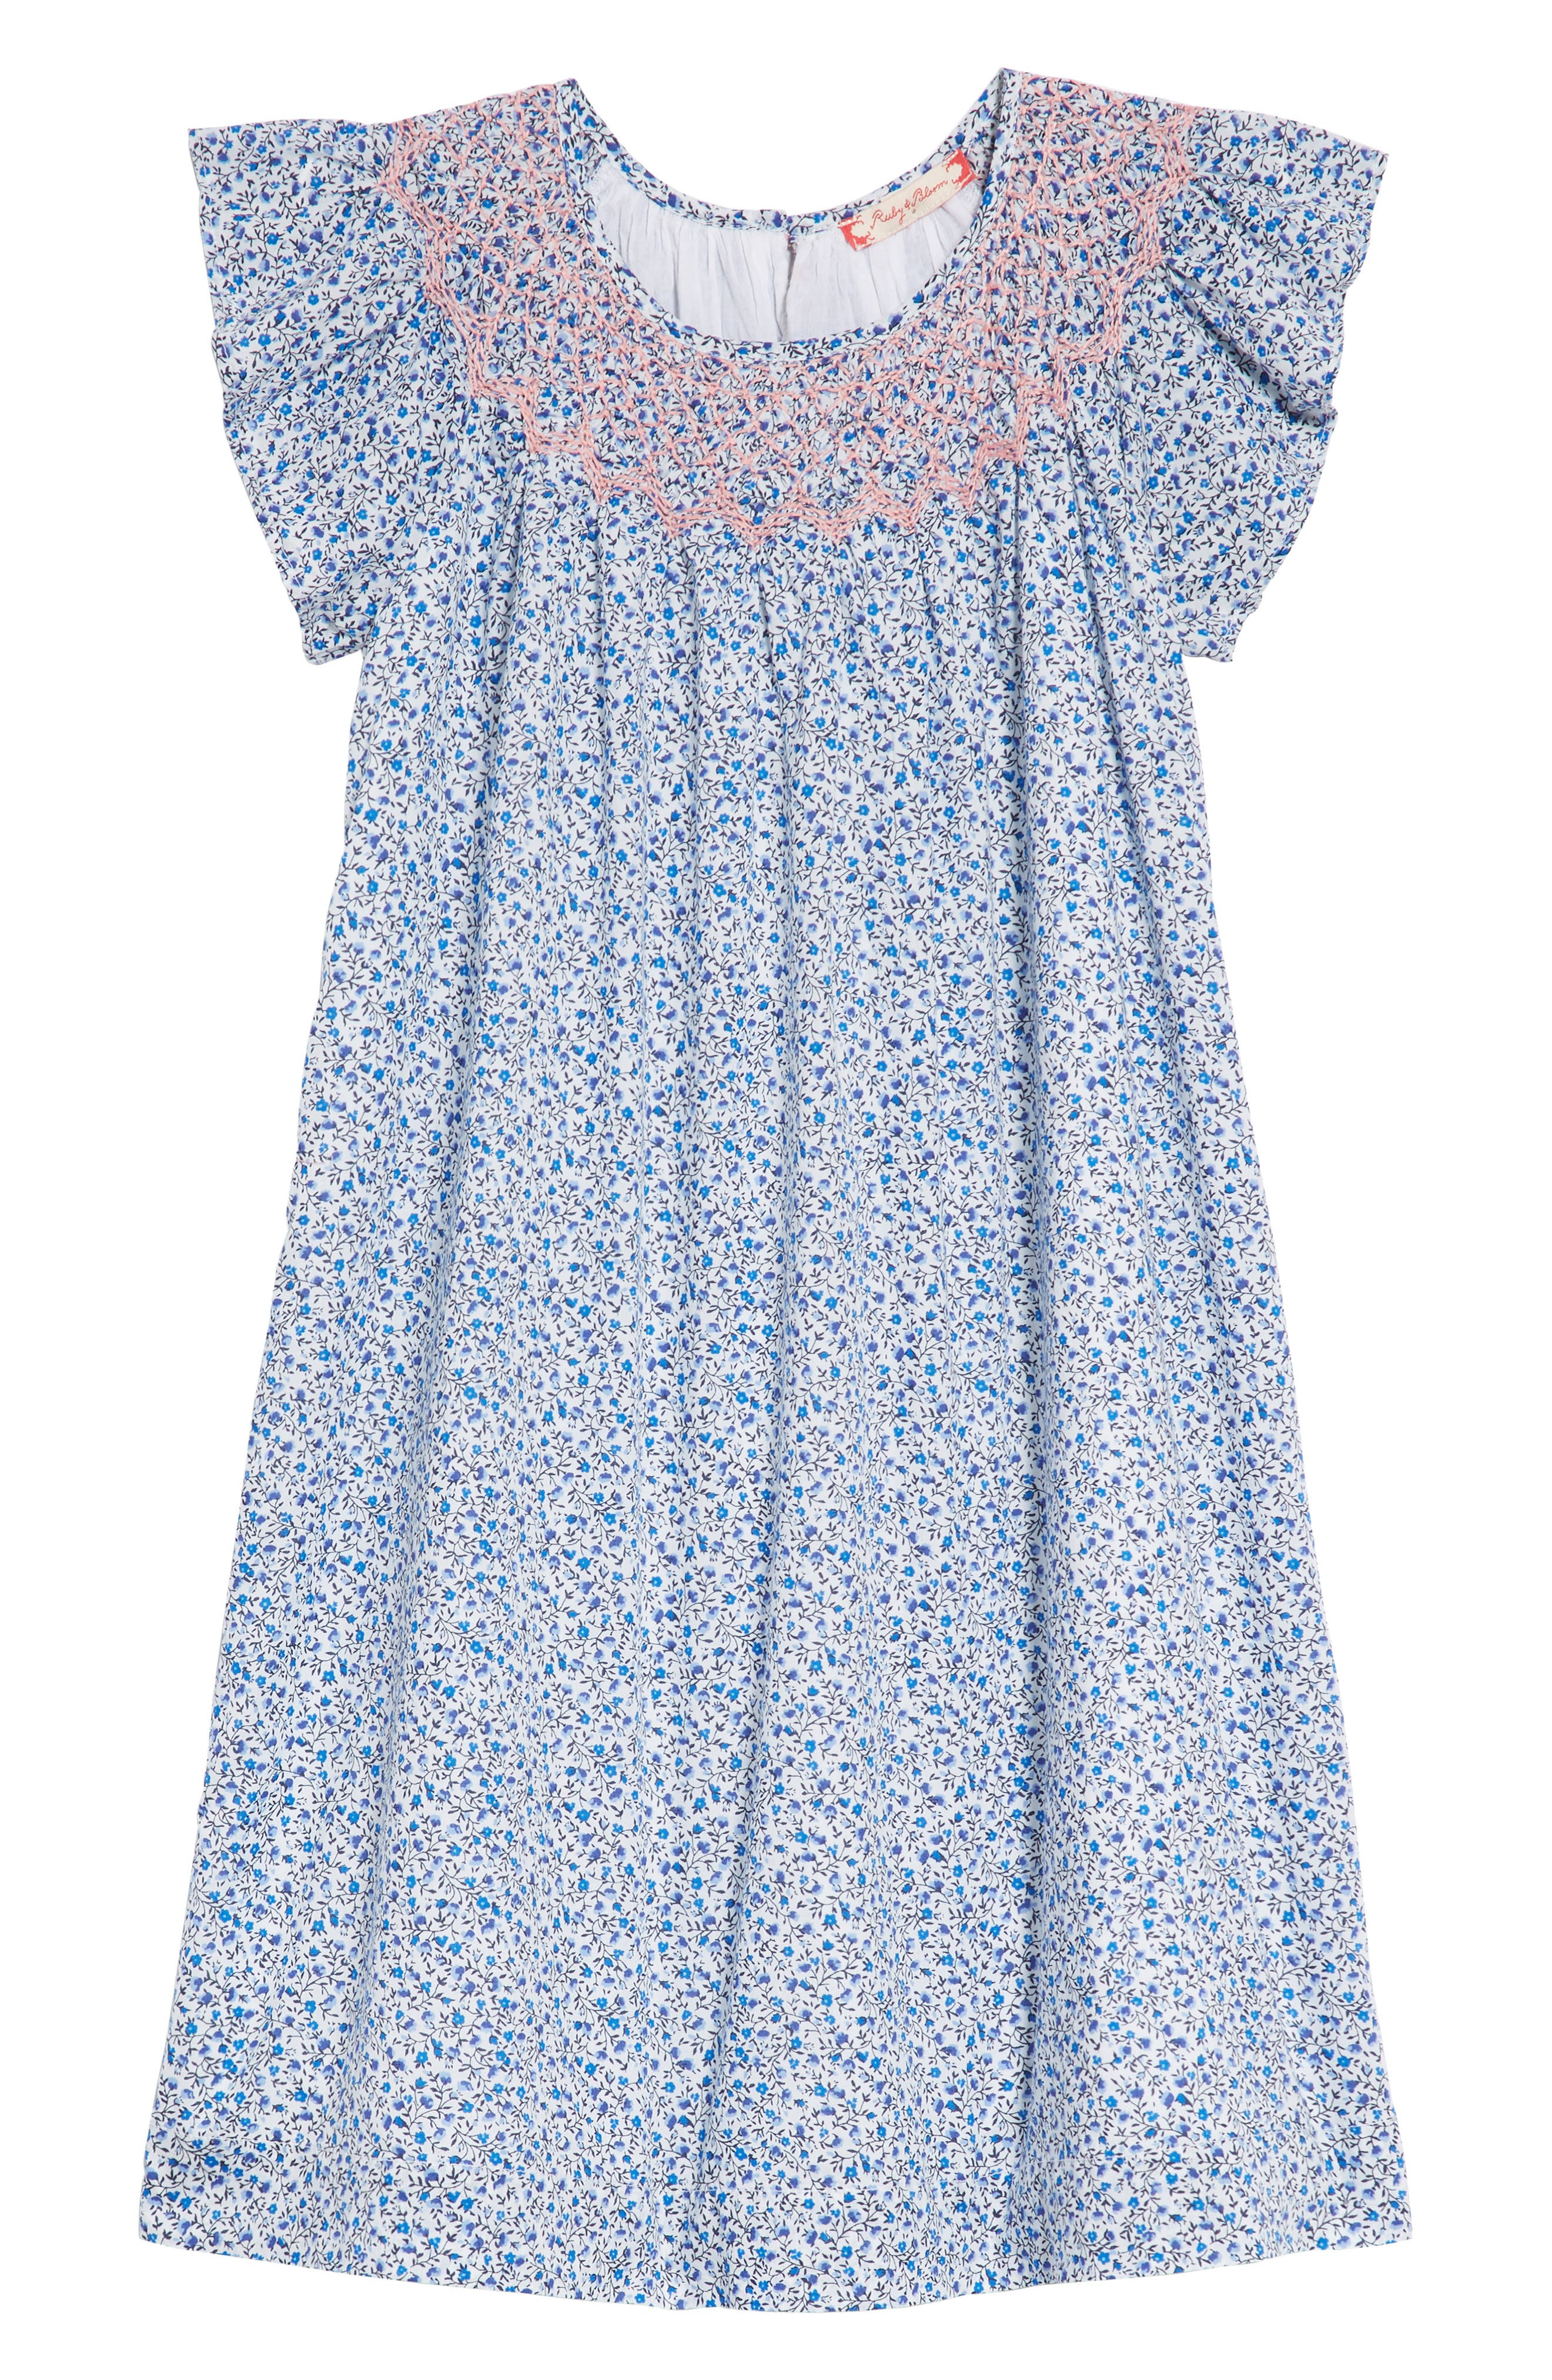 RUBY & BLOOM Smocked Ditzy Dress, Main, color, 100